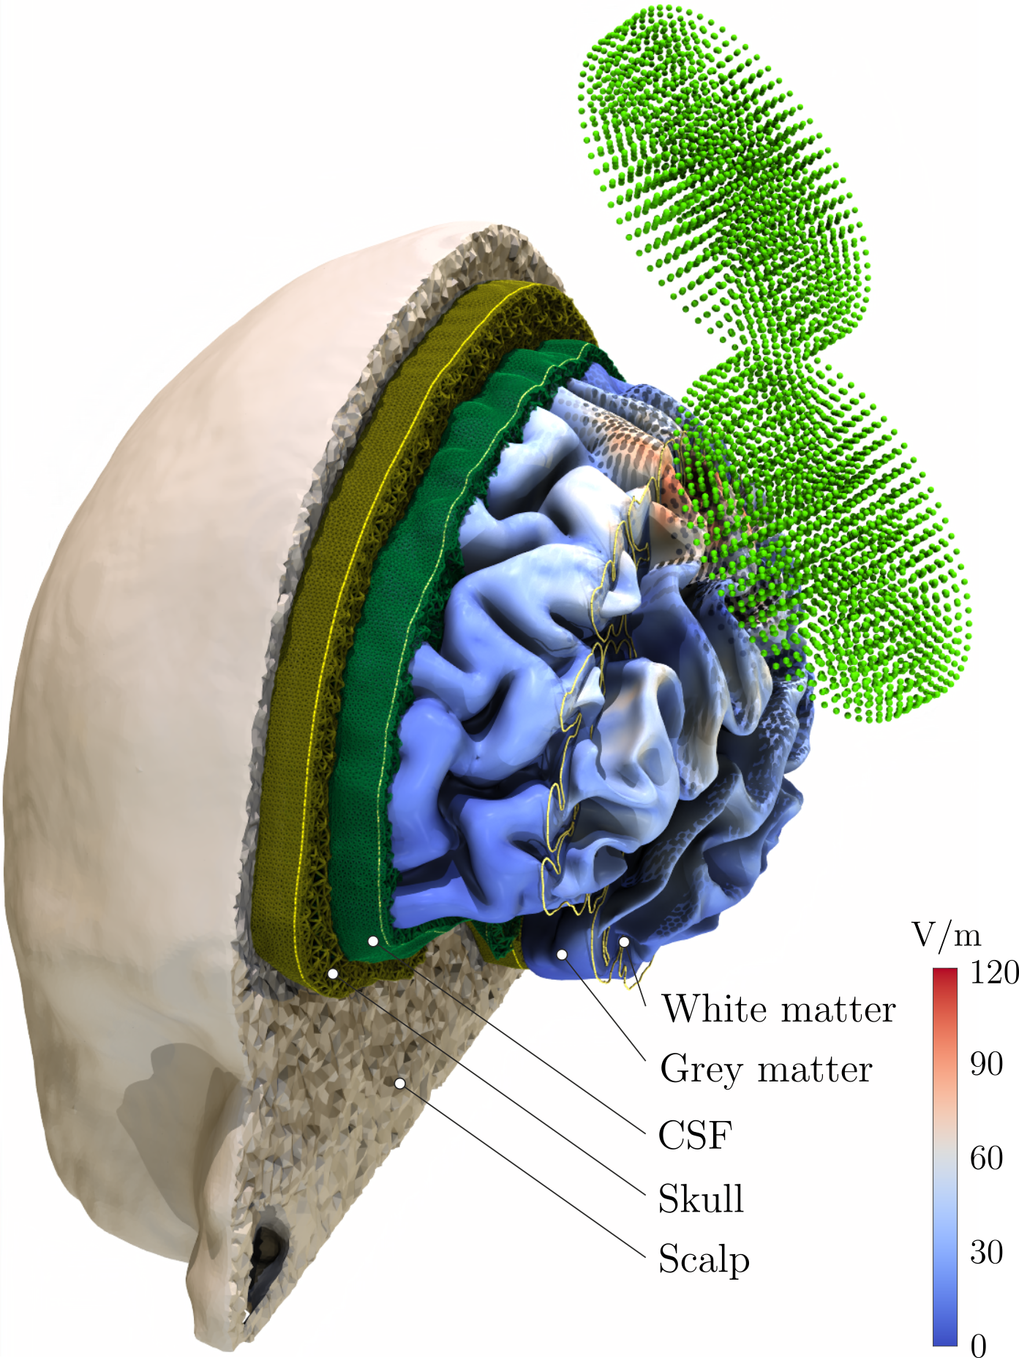 Modeling of Transcranial Magnetic Stimulation